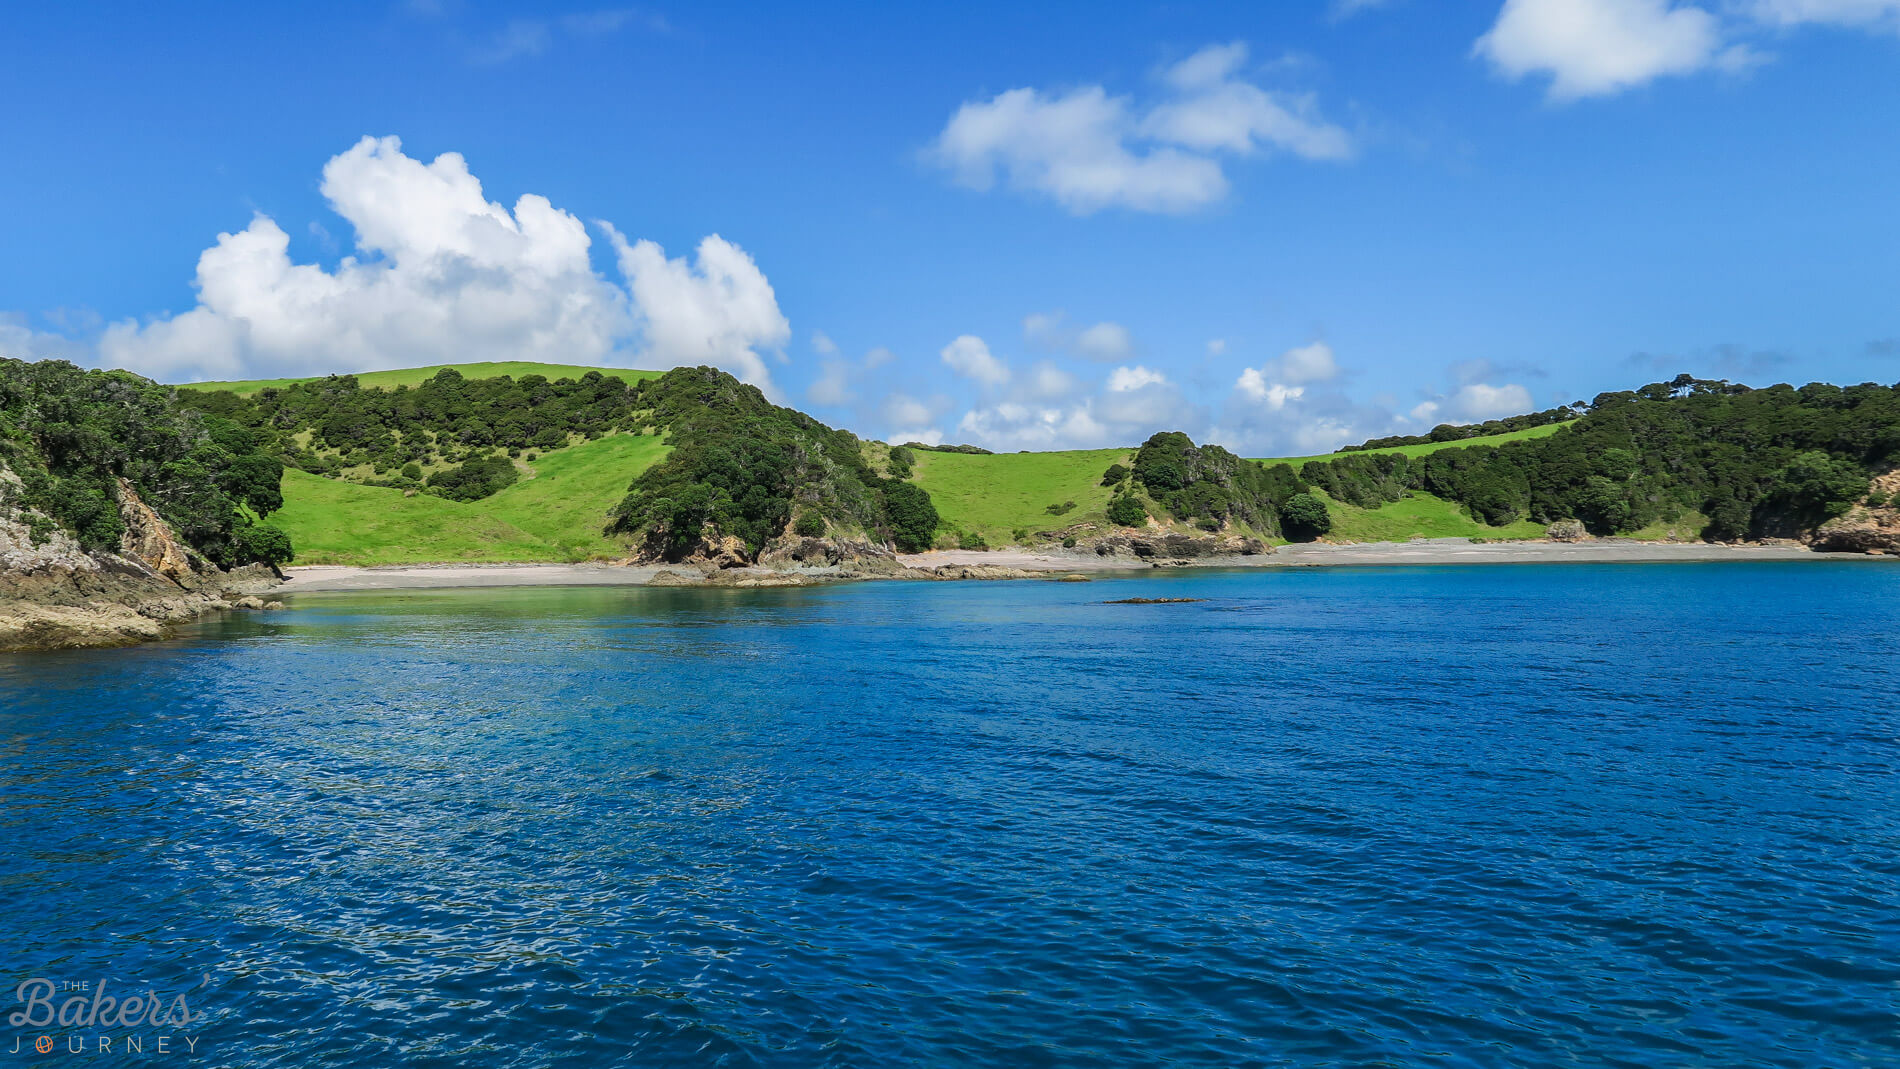 Touring the Turquoise Water of the Bay of Islands